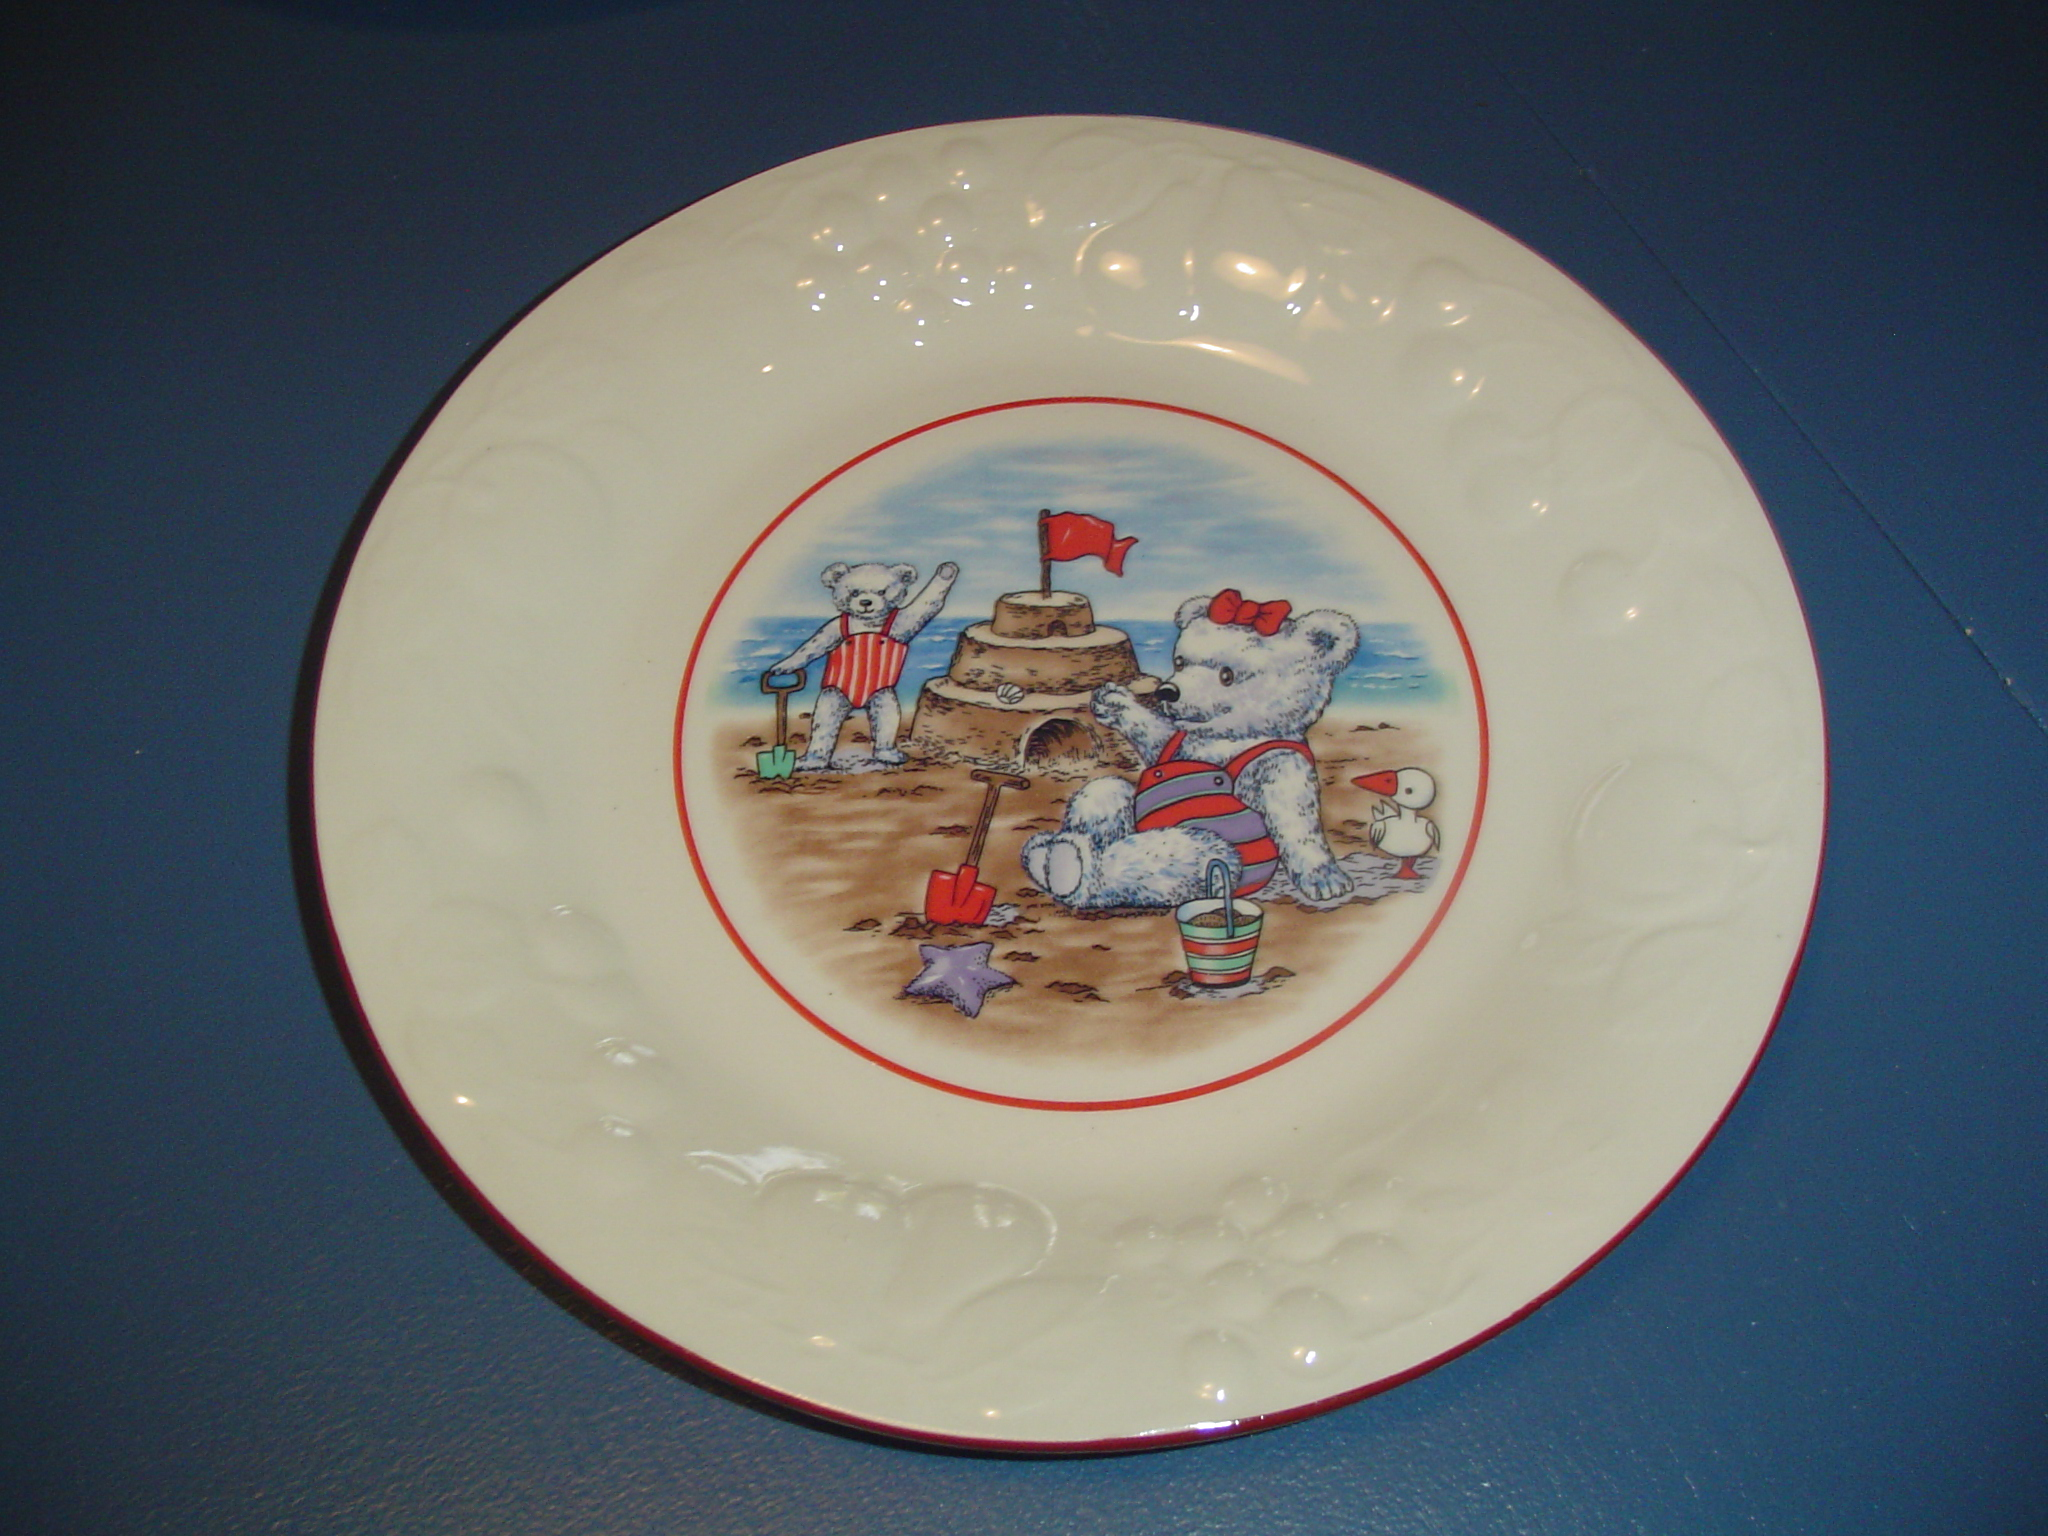 Ute Set of 4 Teddy Bear Dinner Plates Reduced 40%